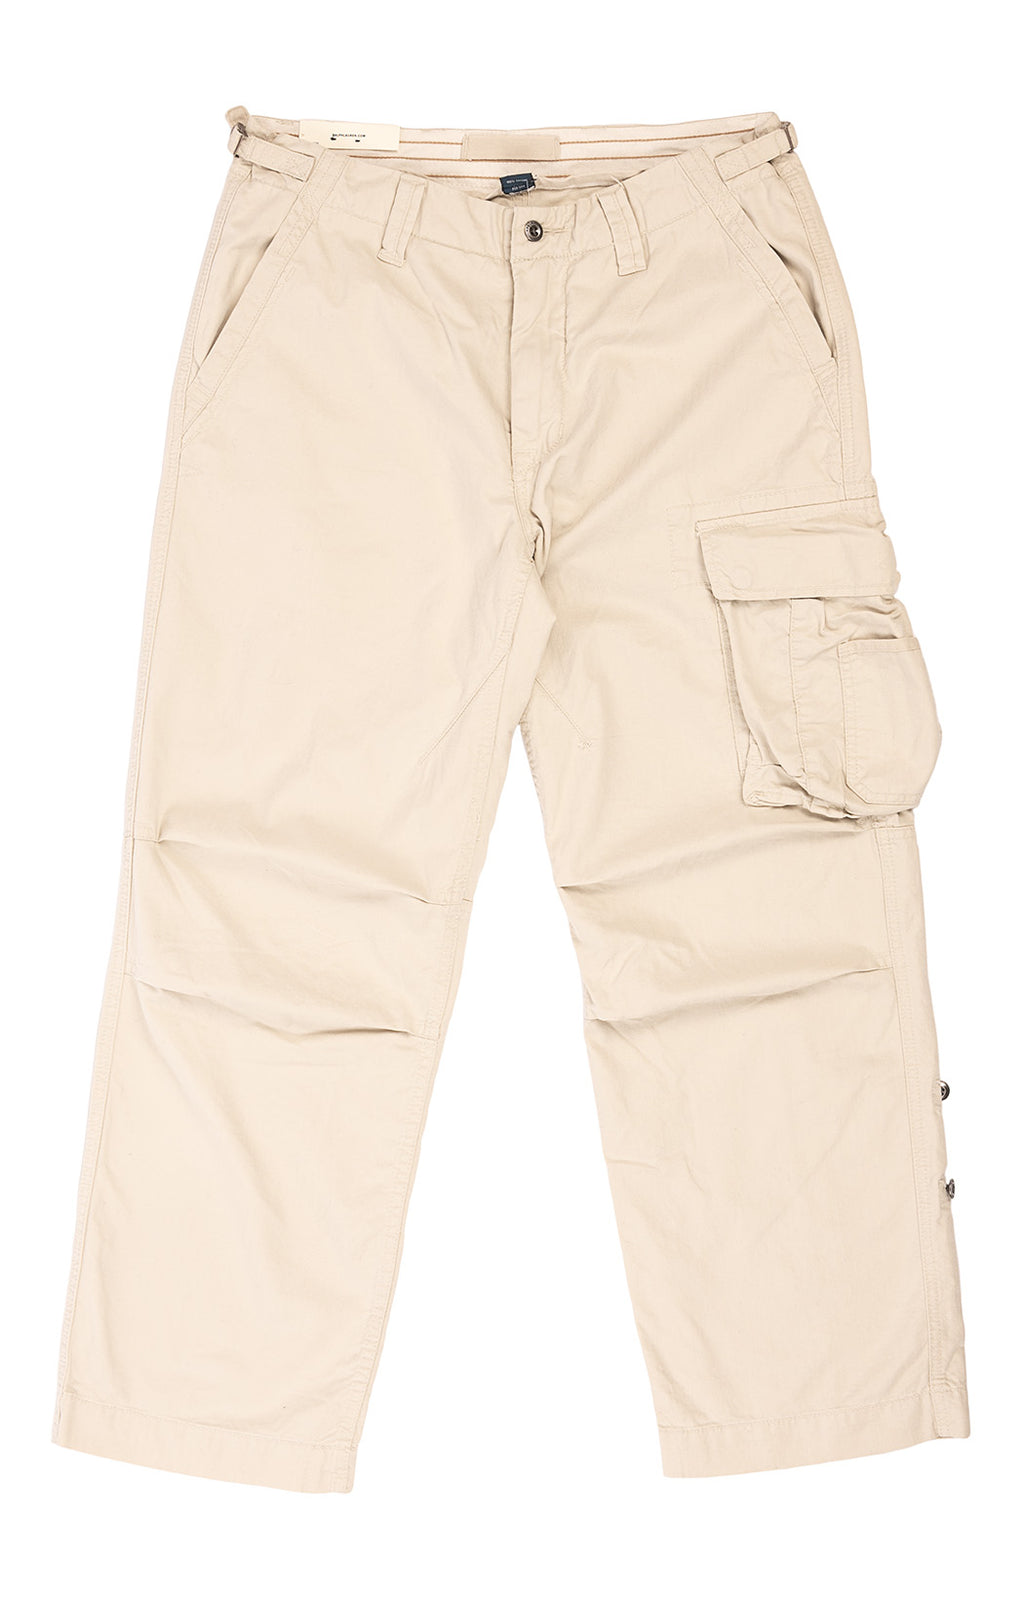 Sand colored cargo pants with front zipper, belt loops, side pockets with one front and two back pockets